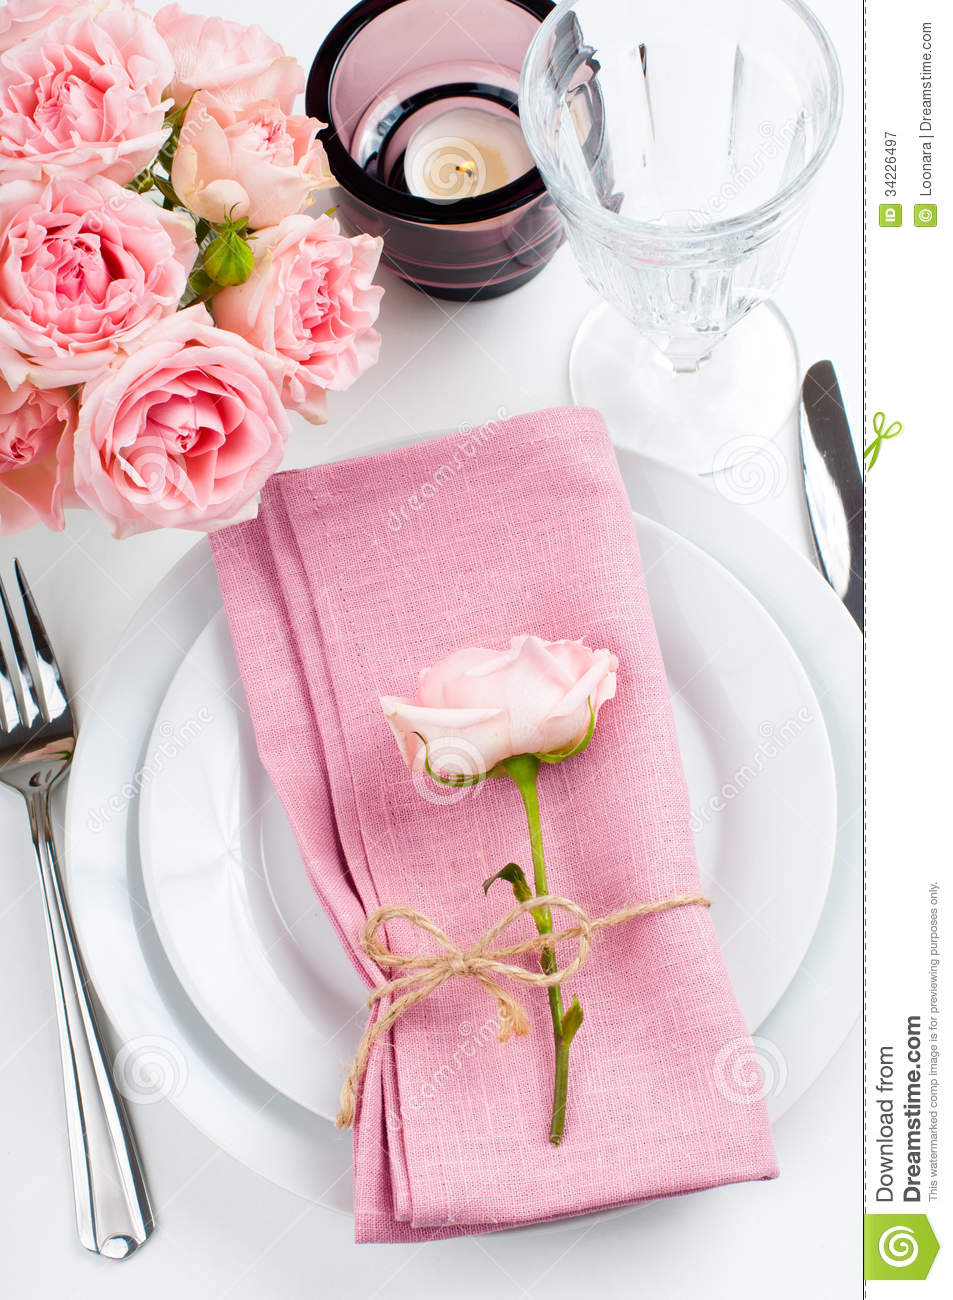 Beautiful Festive Table Setting With Roses Stock Image - Image of ...